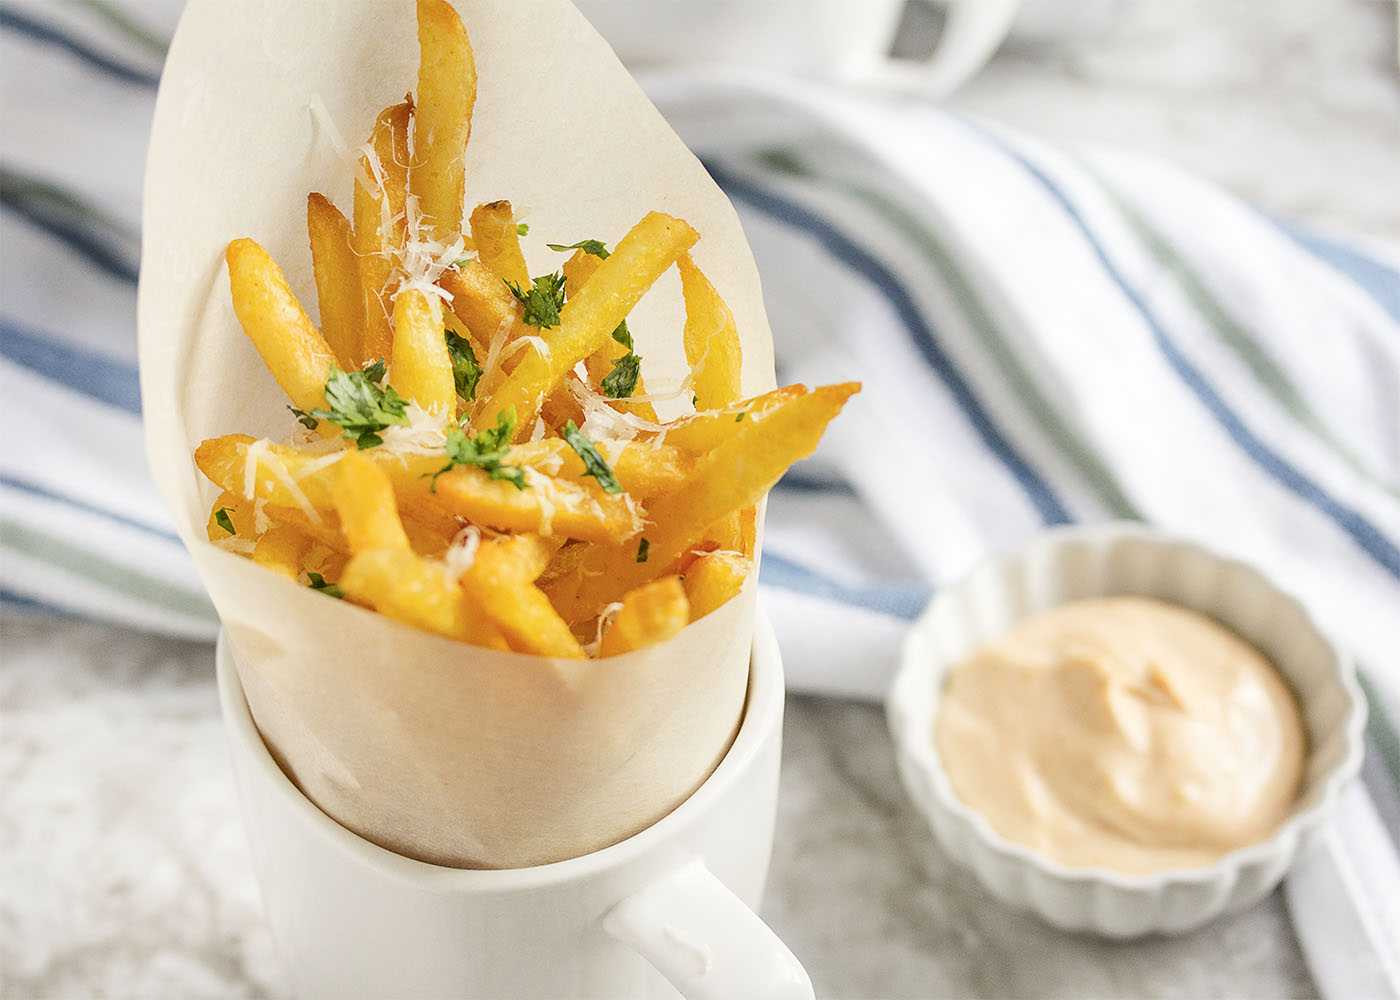 truffle fries with oil